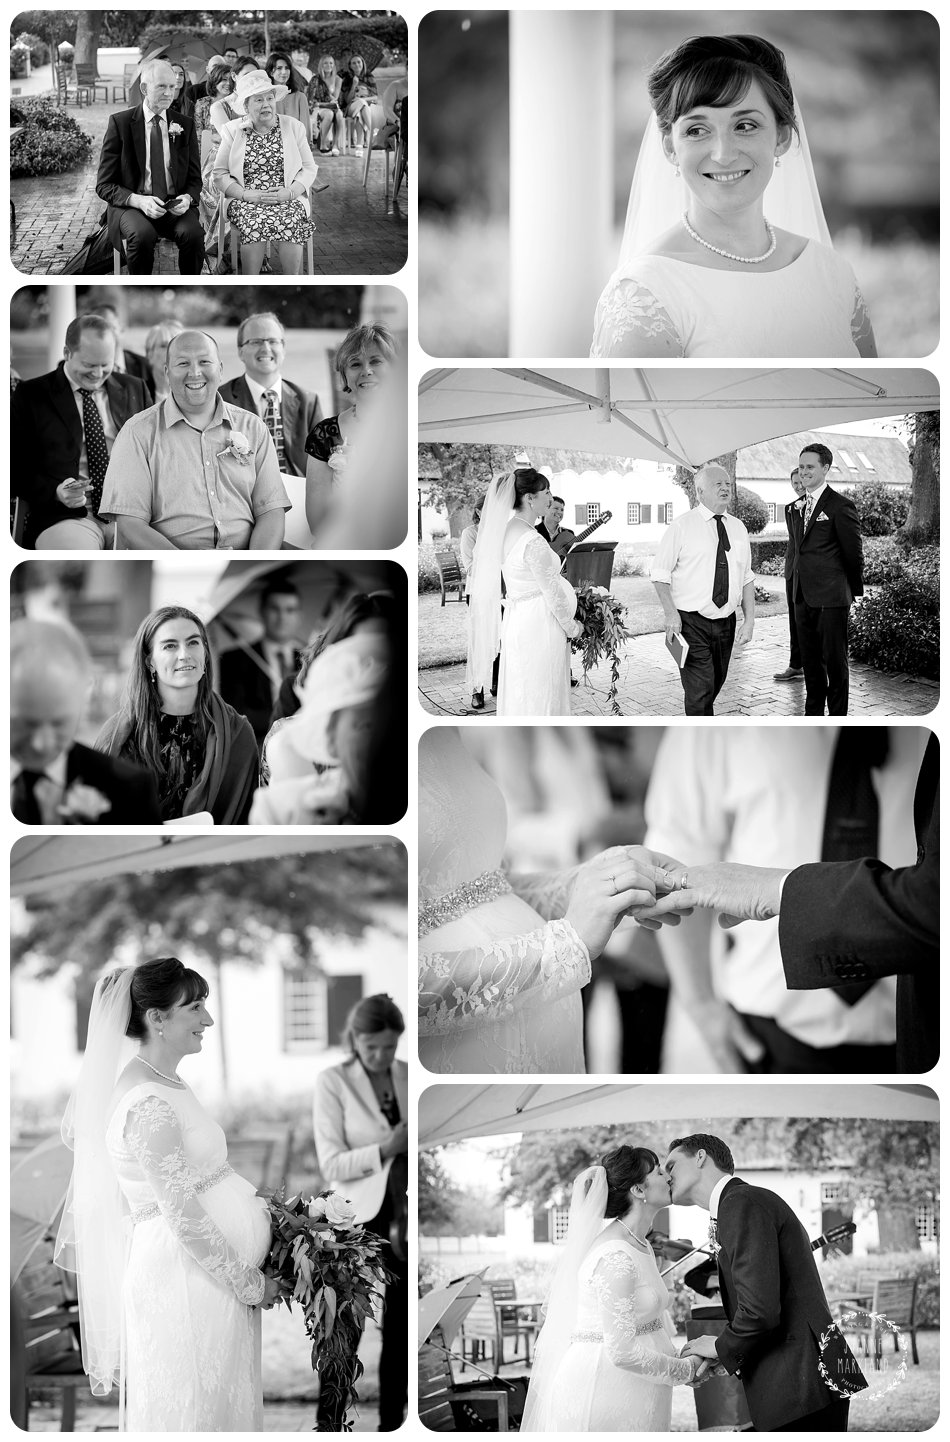 steenberg wedding, steenberg estate, steenberg wedding photographer, joanne markland photography, cape town wedding photographer, wedding photographer cape town, ibis house constantia, catharina